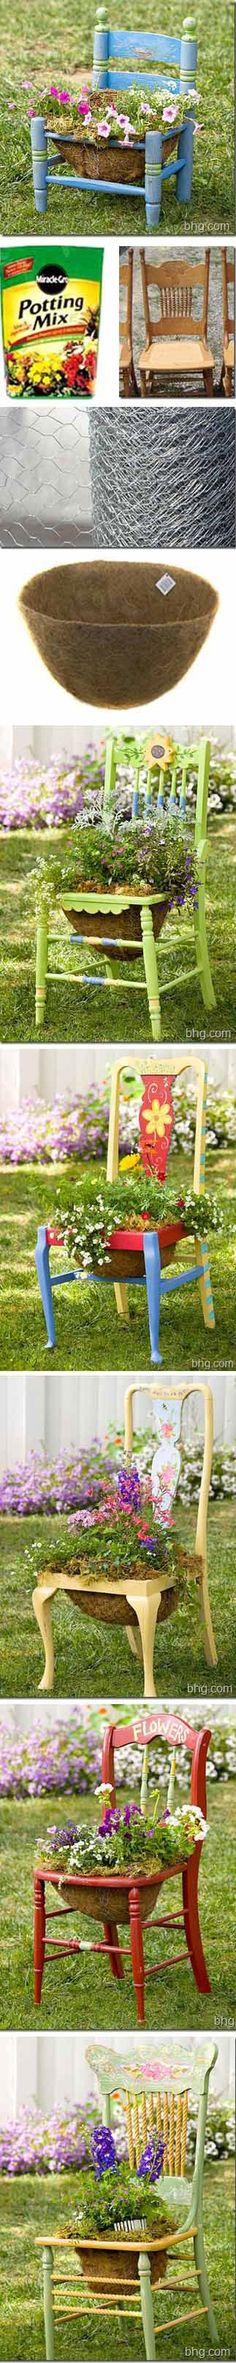 Gardening-Forniture Craft Chairs